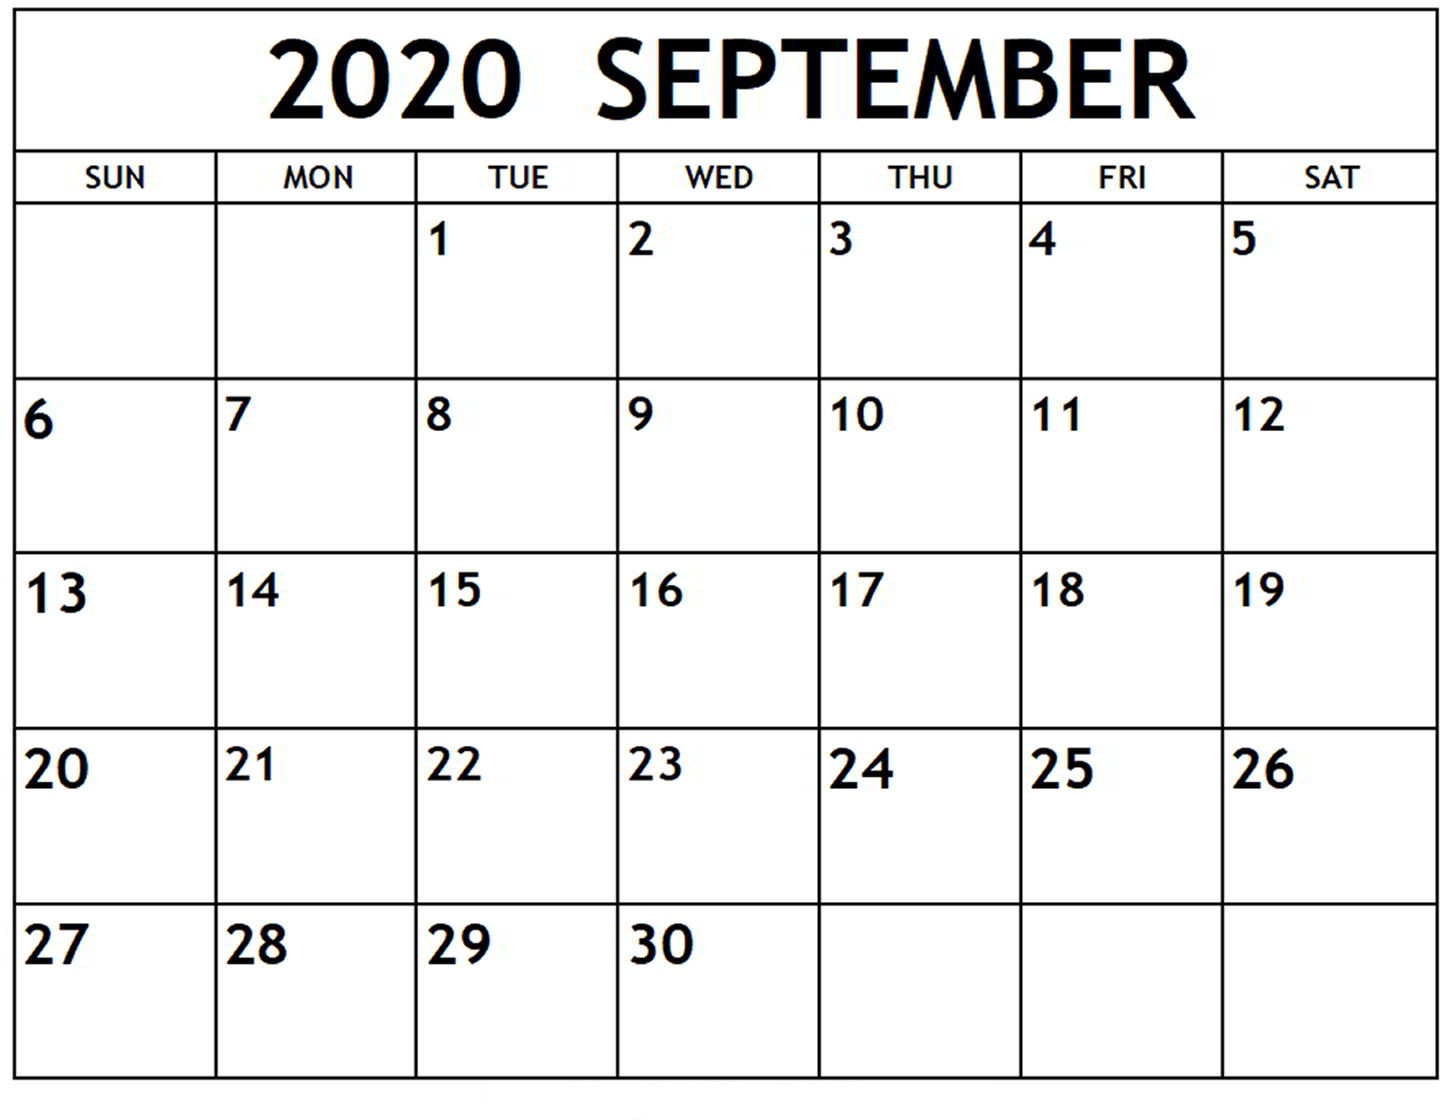 September 2020 Calendar Printable Templates With Notes | 12